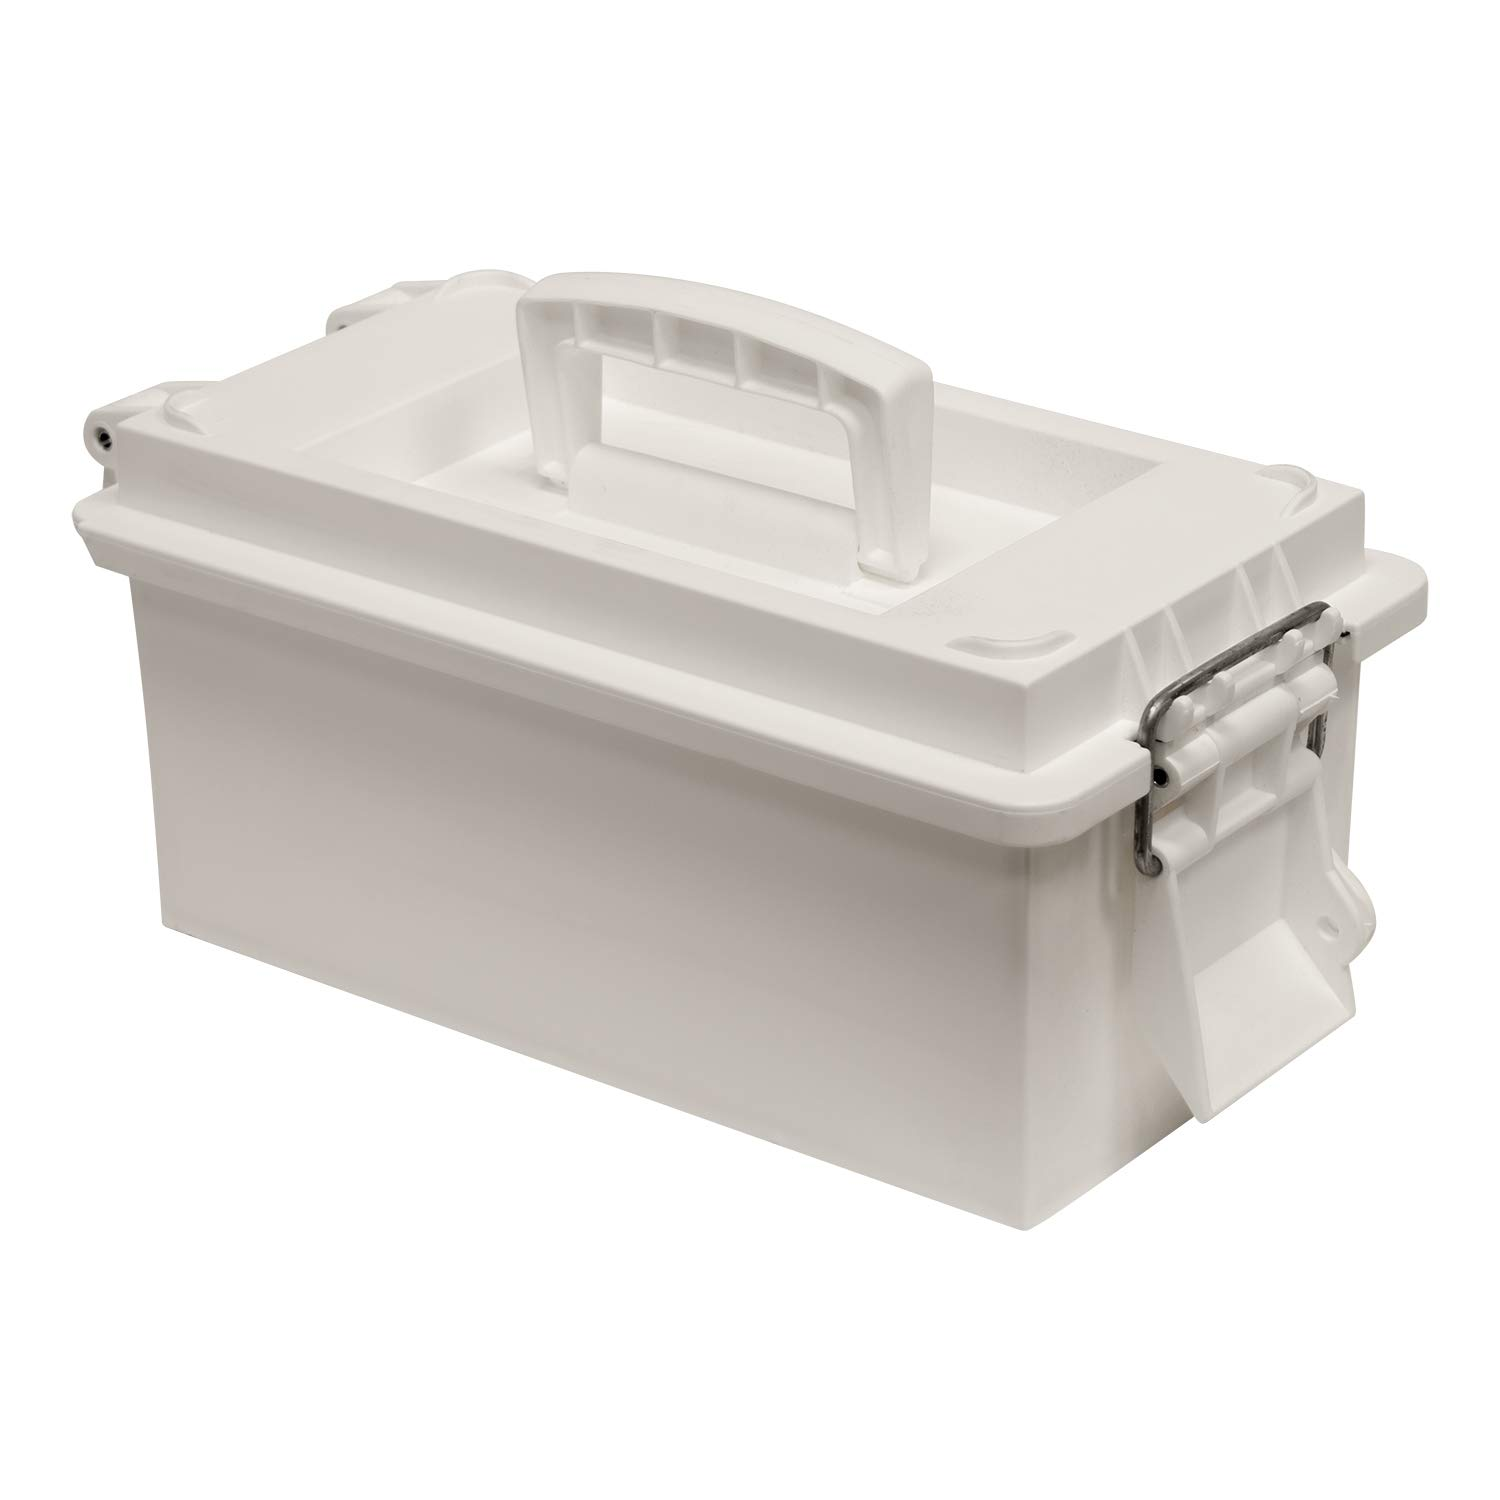 Wise Outdoors 5601-40 Small Utility Dry Box, White by Wise